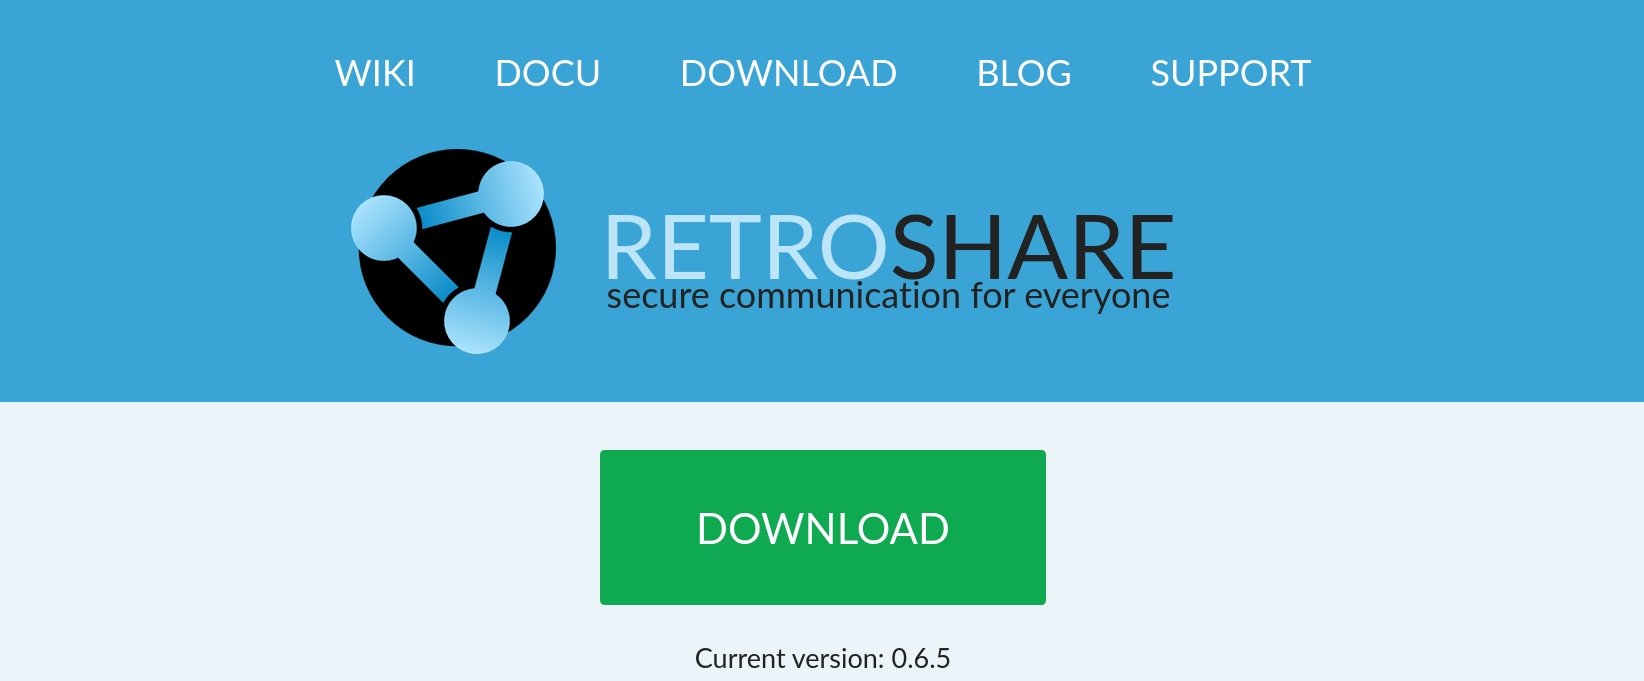 Retroshare free, open-source encrypted internet